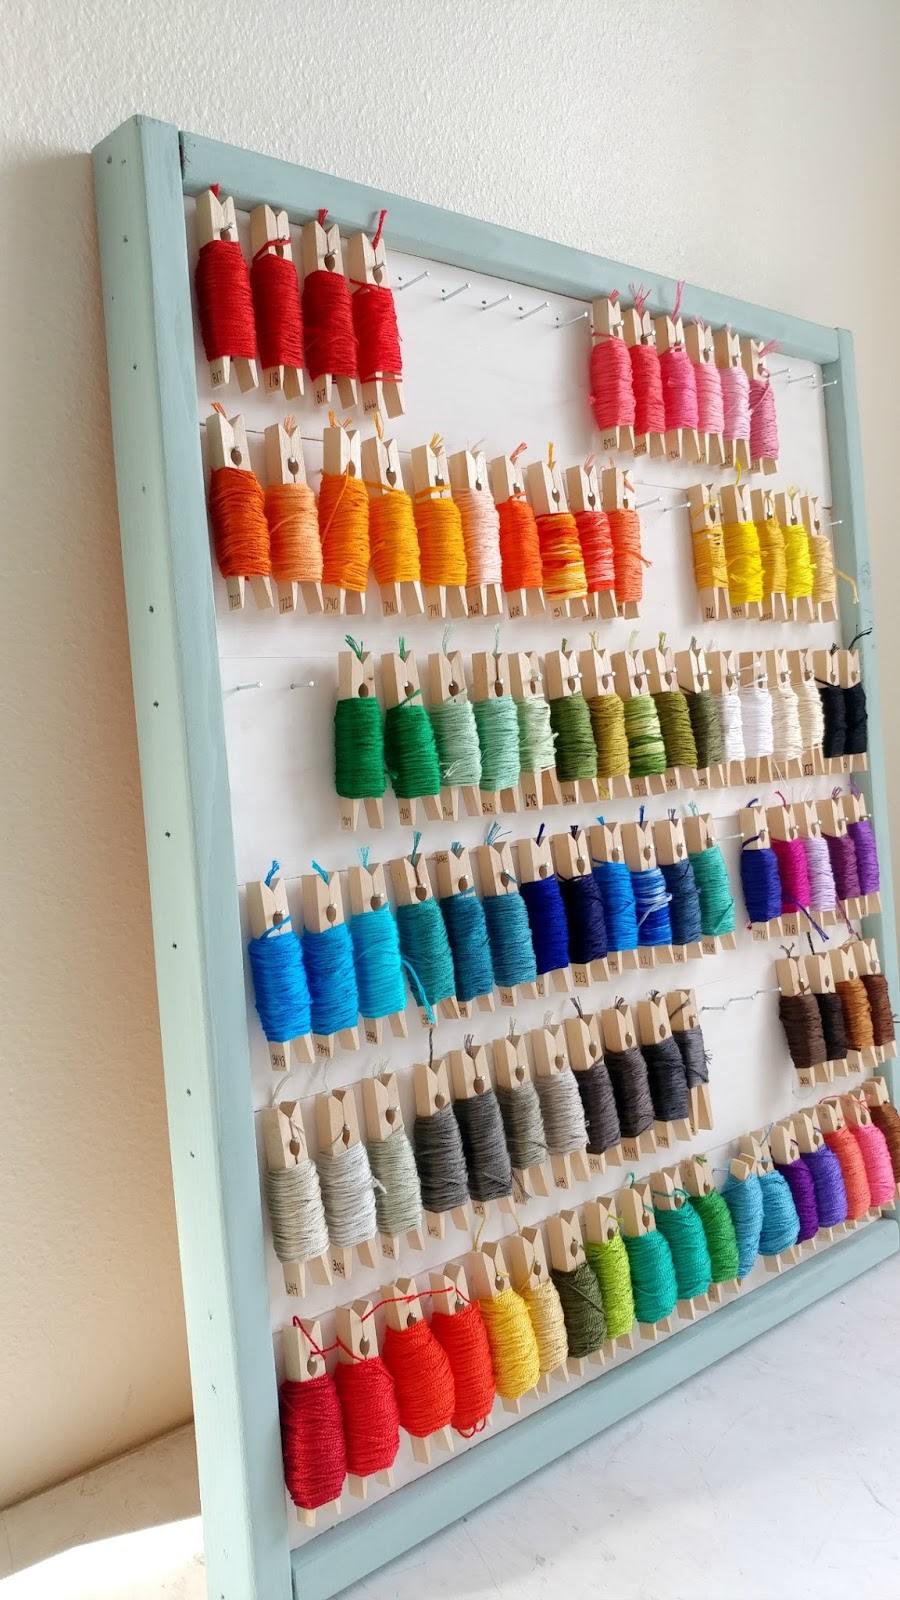 Ameroonie Designs DIY Embroidery Floss Organizer Using Clothespins